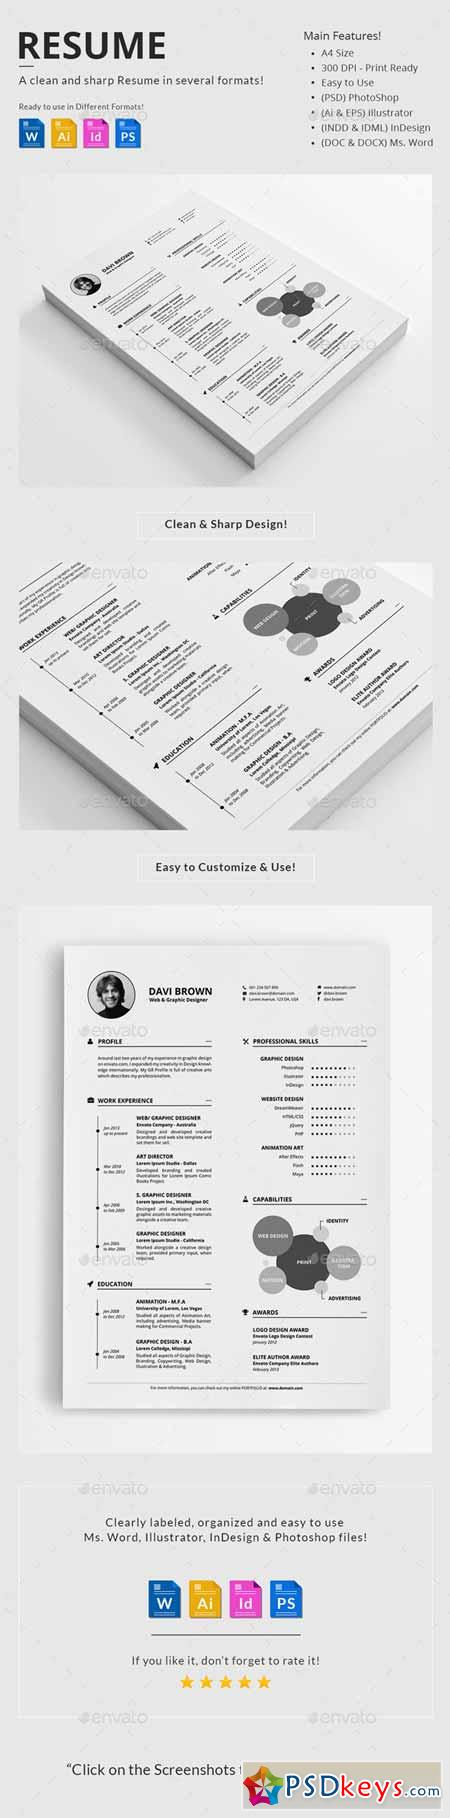 resume 10037229  u00bb free download photoshop vector stock image via torrent zippyshare from psdkeys com